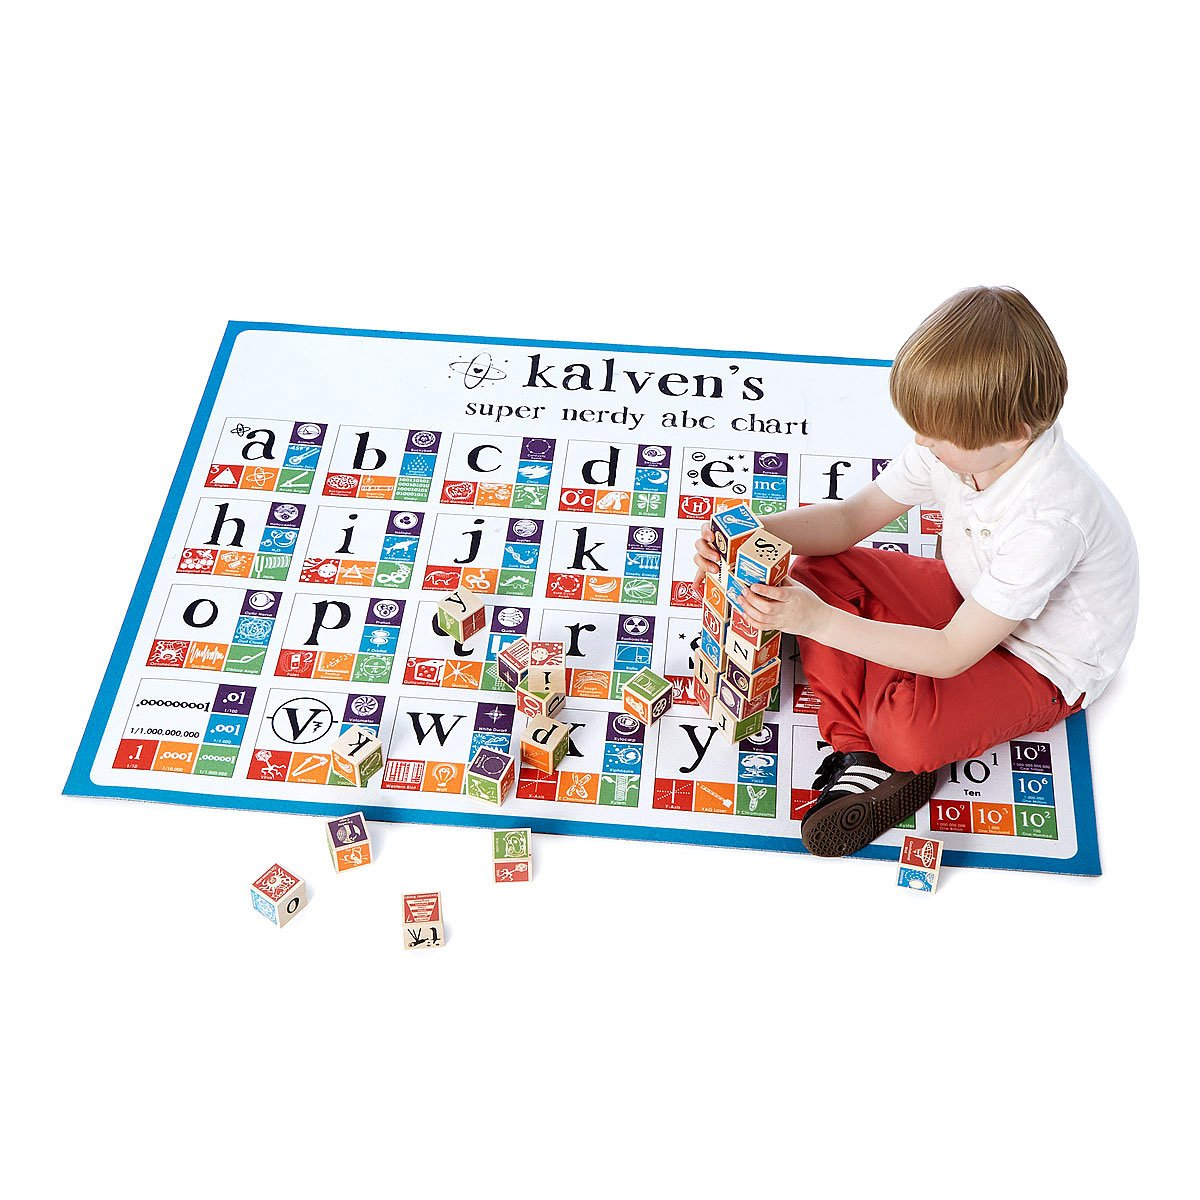 New periodic table of elements name maker periodic periodic name of table elements maker super personalized mat play abc mat nerdy uncommongoods gamestrikefo Gallery